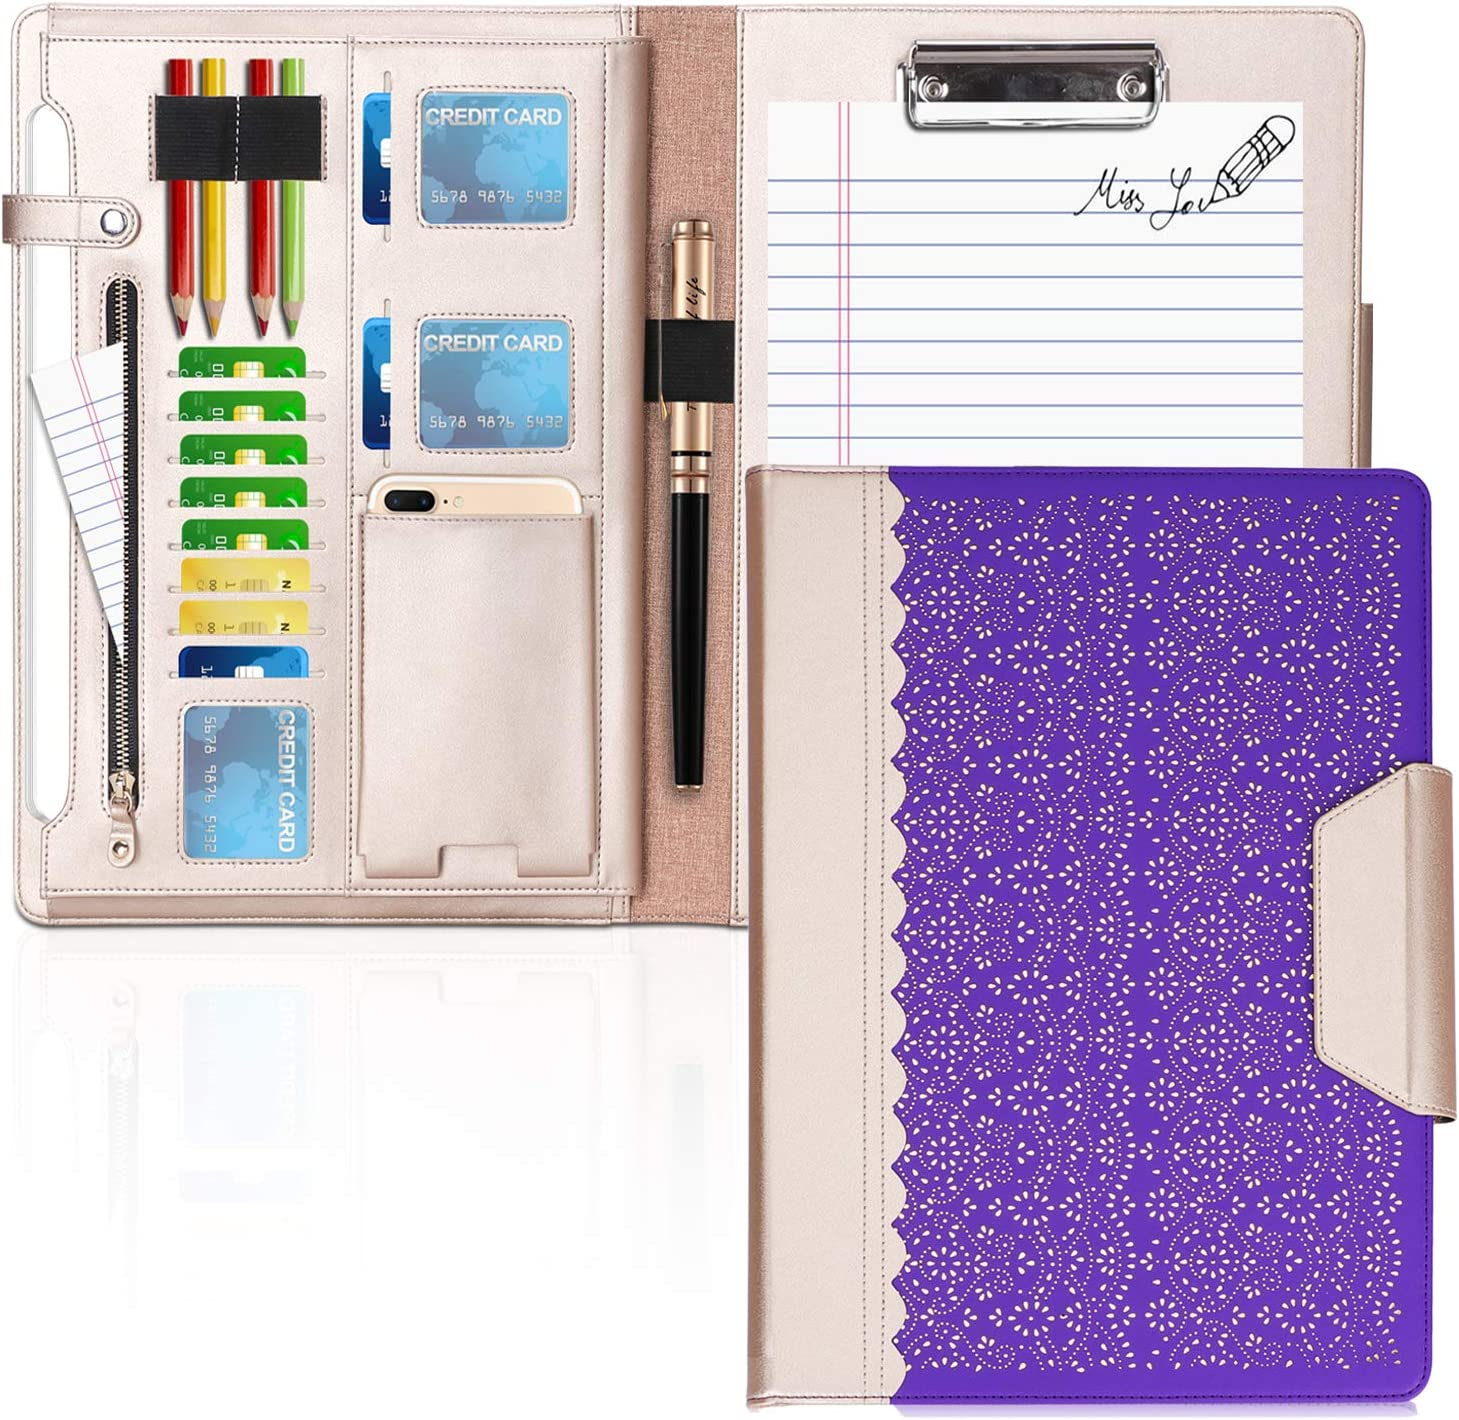 WWW Portfolio Case/Portfolio Folder, Interview/Legal Document Organizer with Business Card Holders, Letter-Sized Clipboard and Document Sleeve for Office and Interview Purple